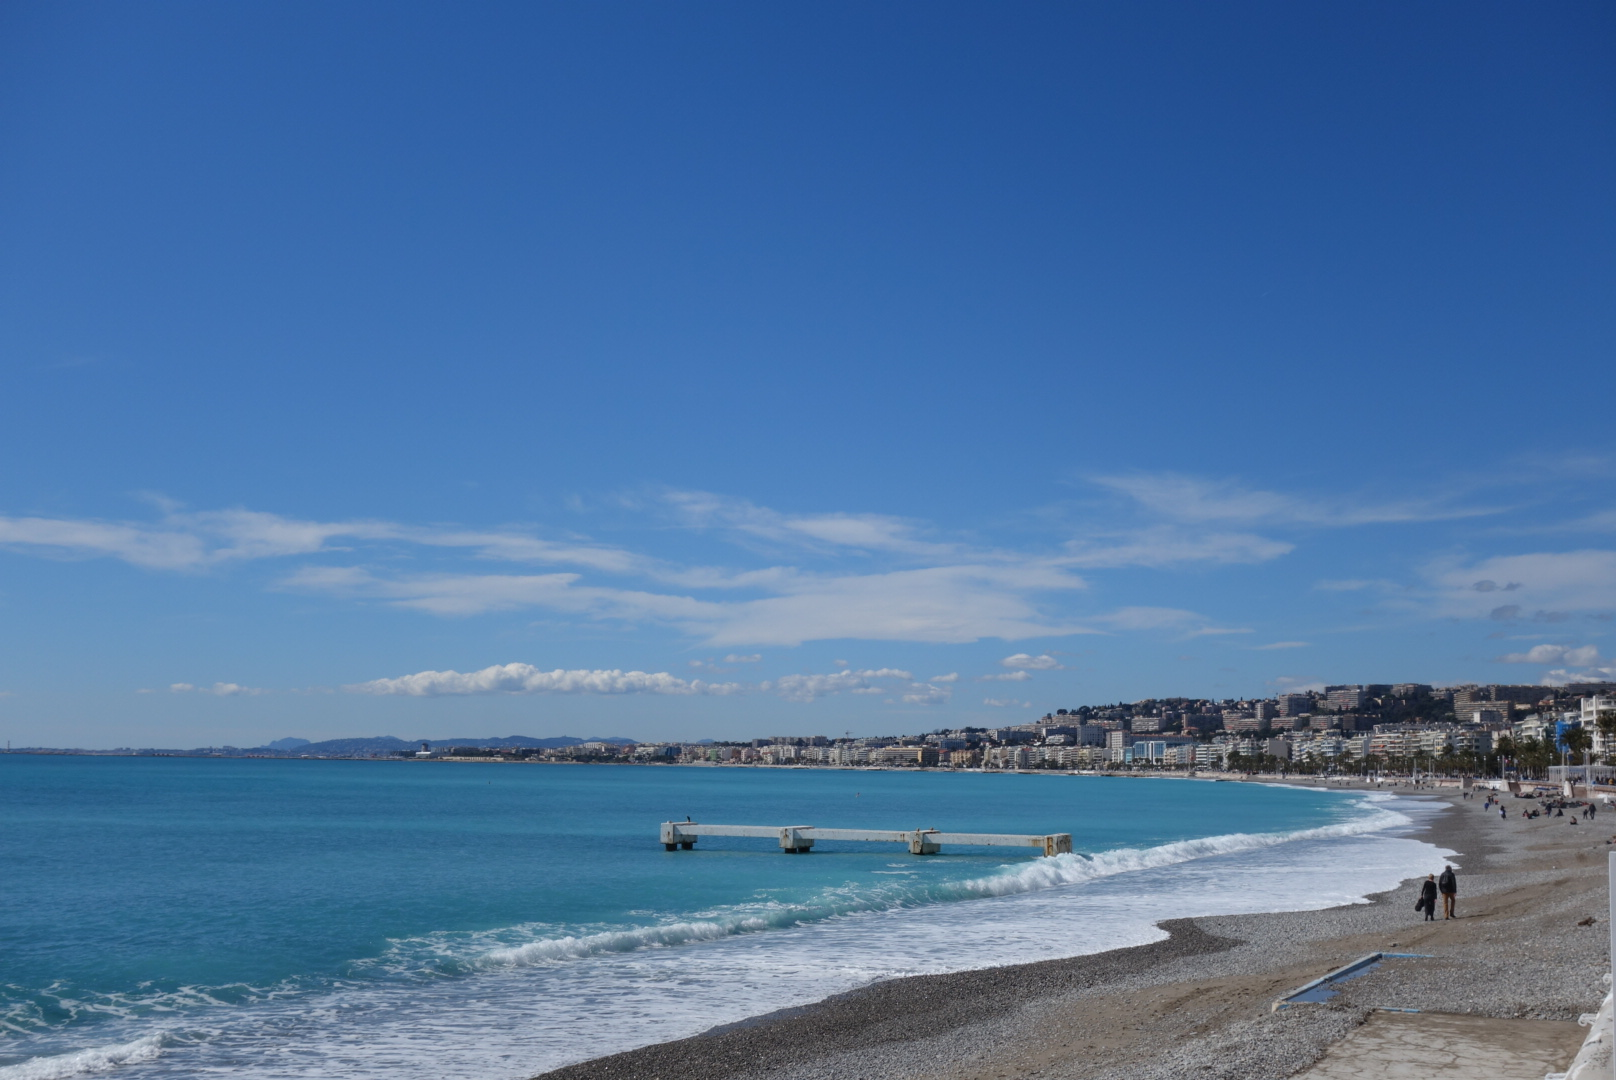 The sun decided to come out on our last day in Nice and we got to see it live up to its name, the Cote d'Azur